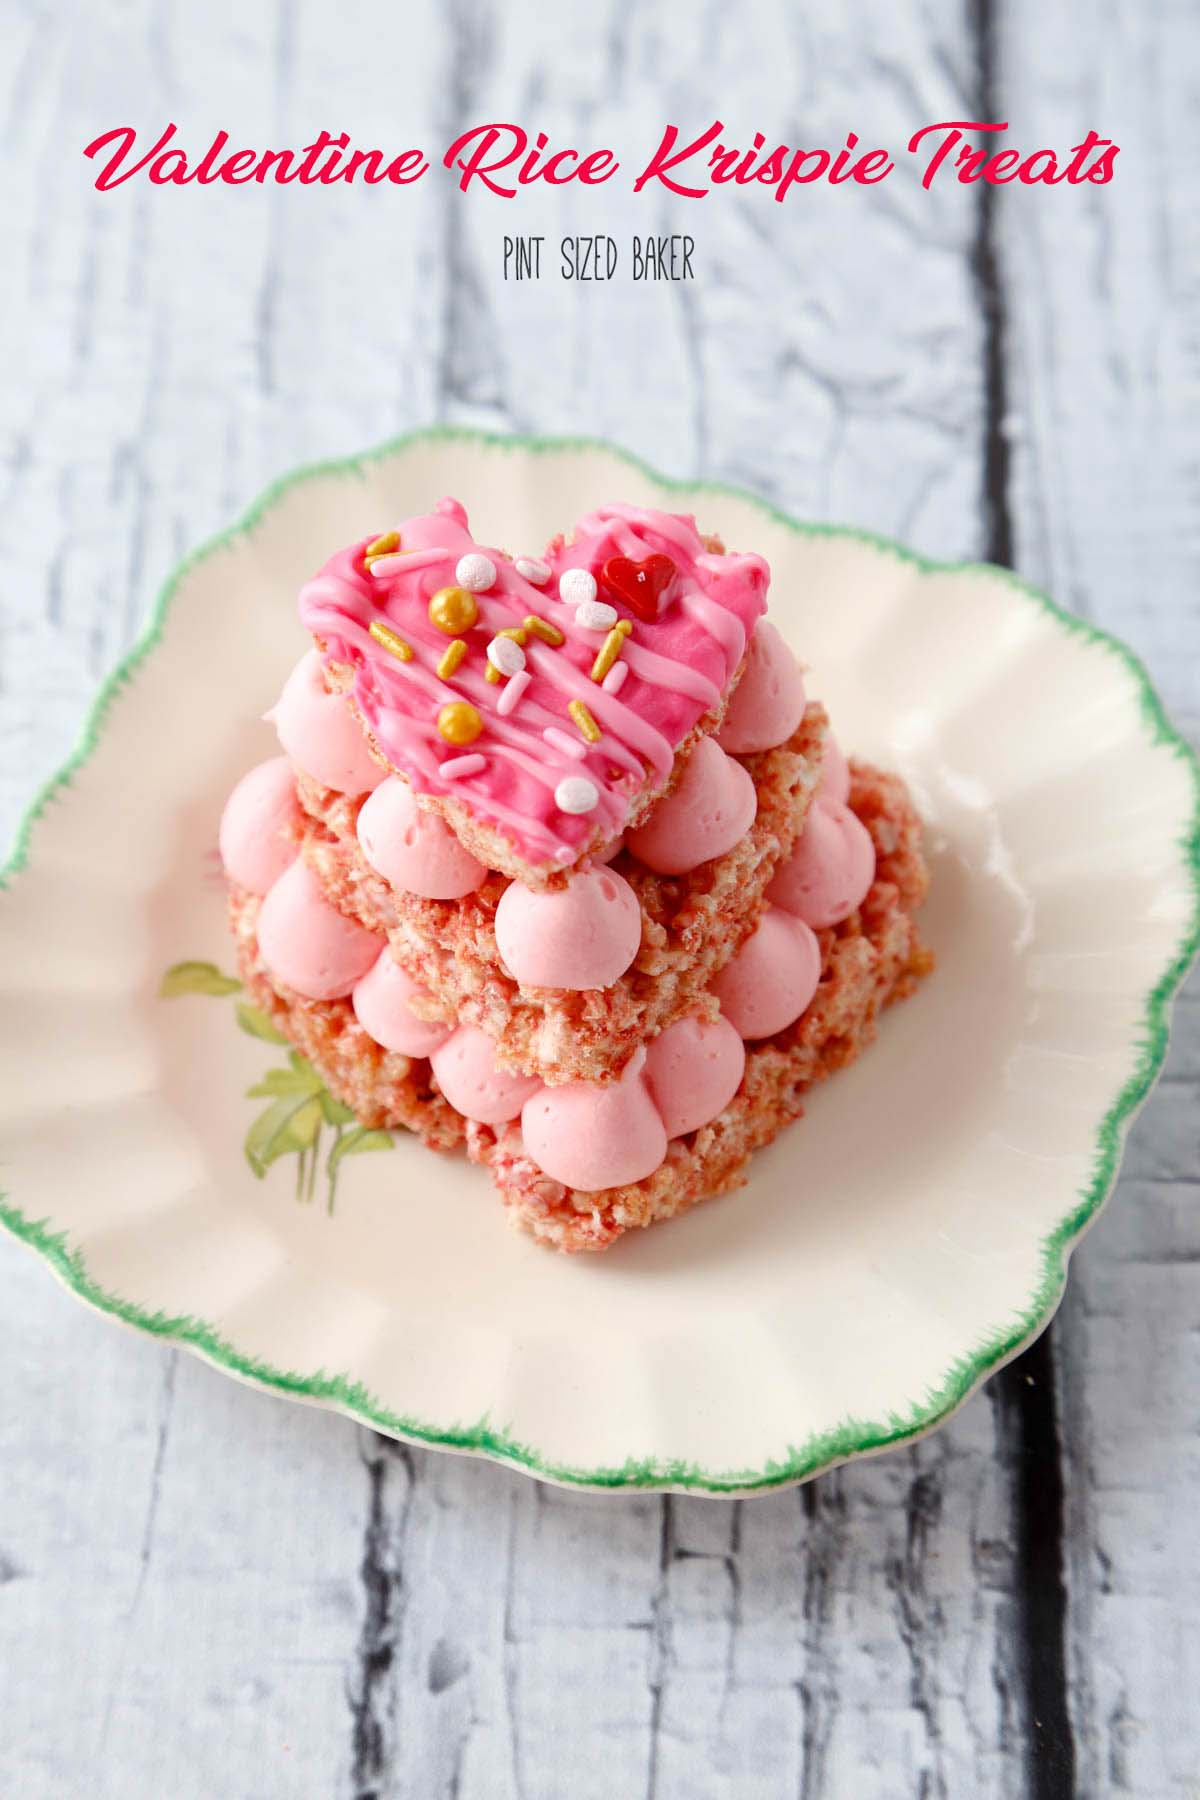 Everybody loves pink food! These Strawberry Valentine Rice Krispie Treats are made with pink Rice Krispie Cereal and strawberry pink frosting!